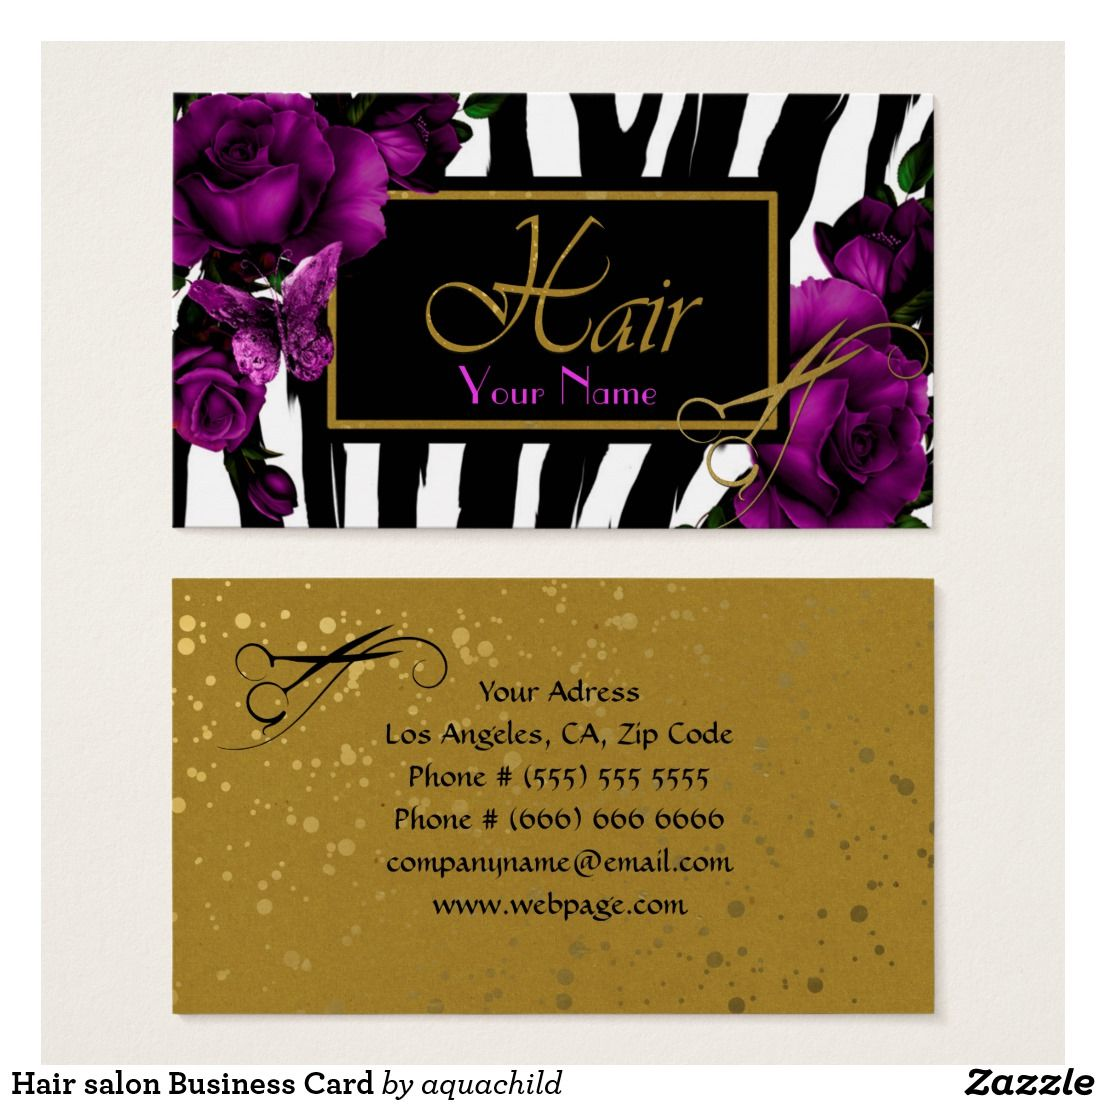 zazzle wedding invitations promo code%0A Hair salon Business Card